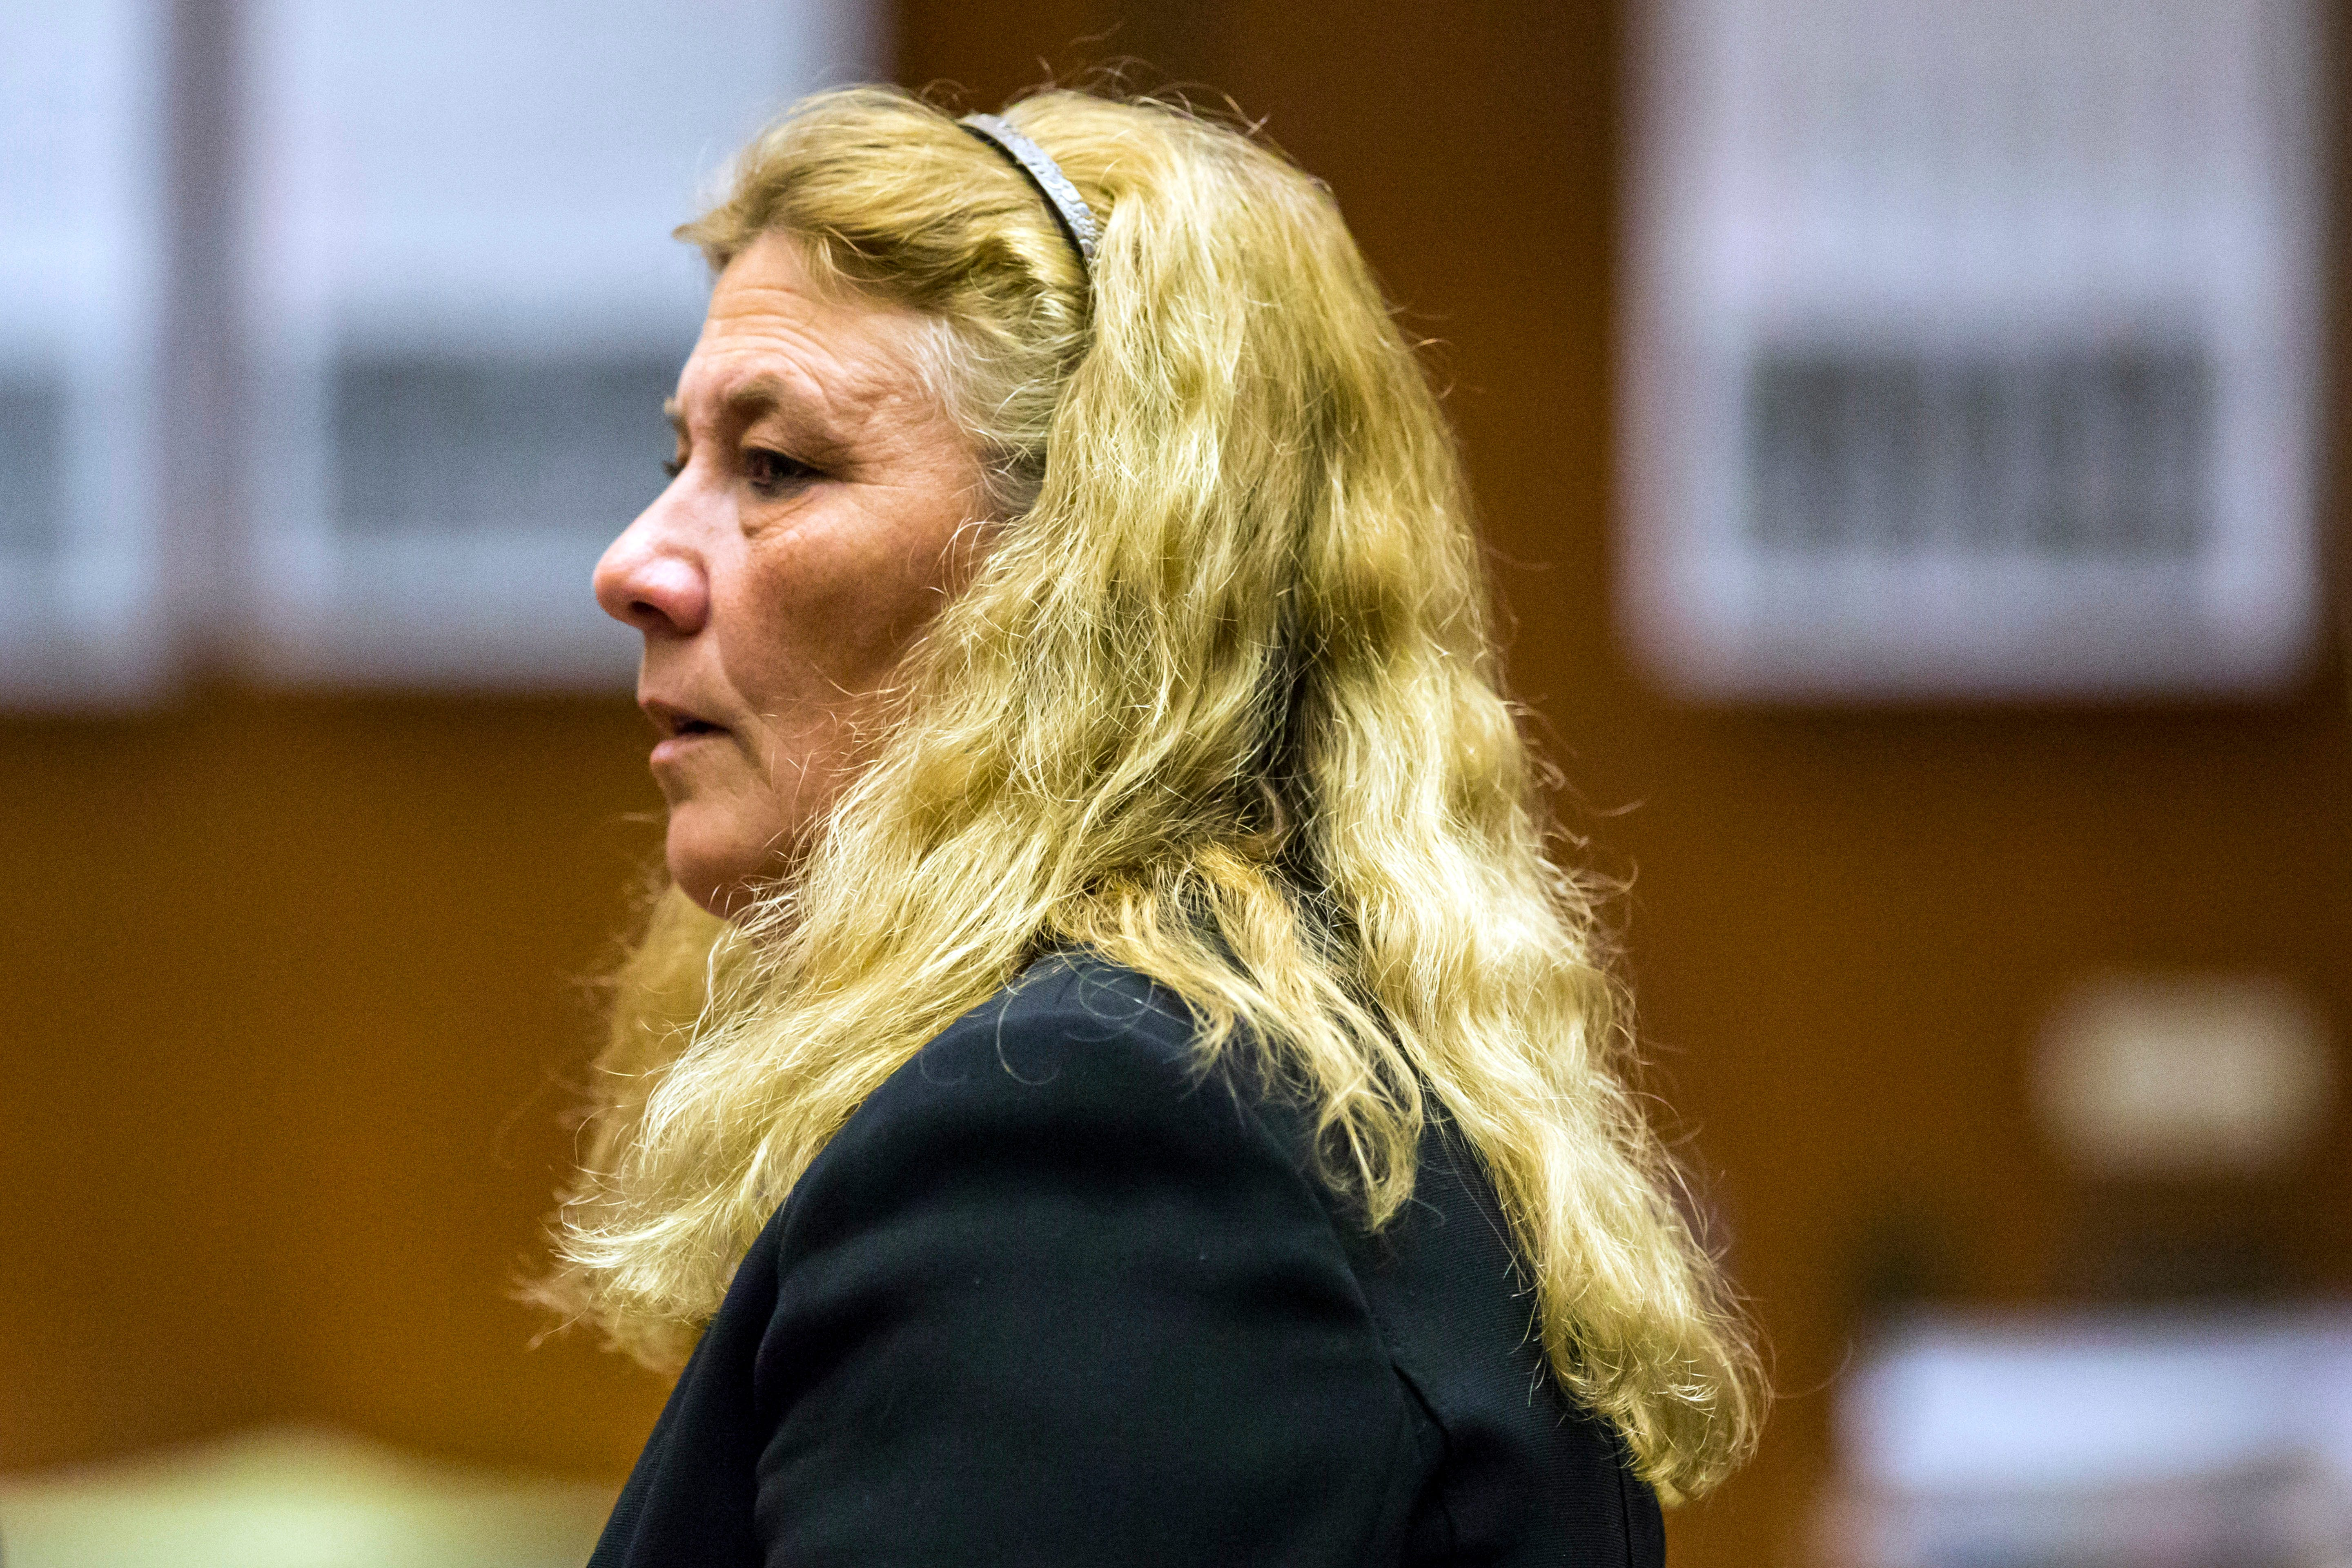 Mary O'Callaghan, seen here June 5, 2015, after being convicted of assault under color of authority, was sentenced July 23, 2015, to 36 months for hitting and kicking Alisha Thomas in July 2012. Thomas later died. The judge suspended 20 months of O'Callaghan's sentence.